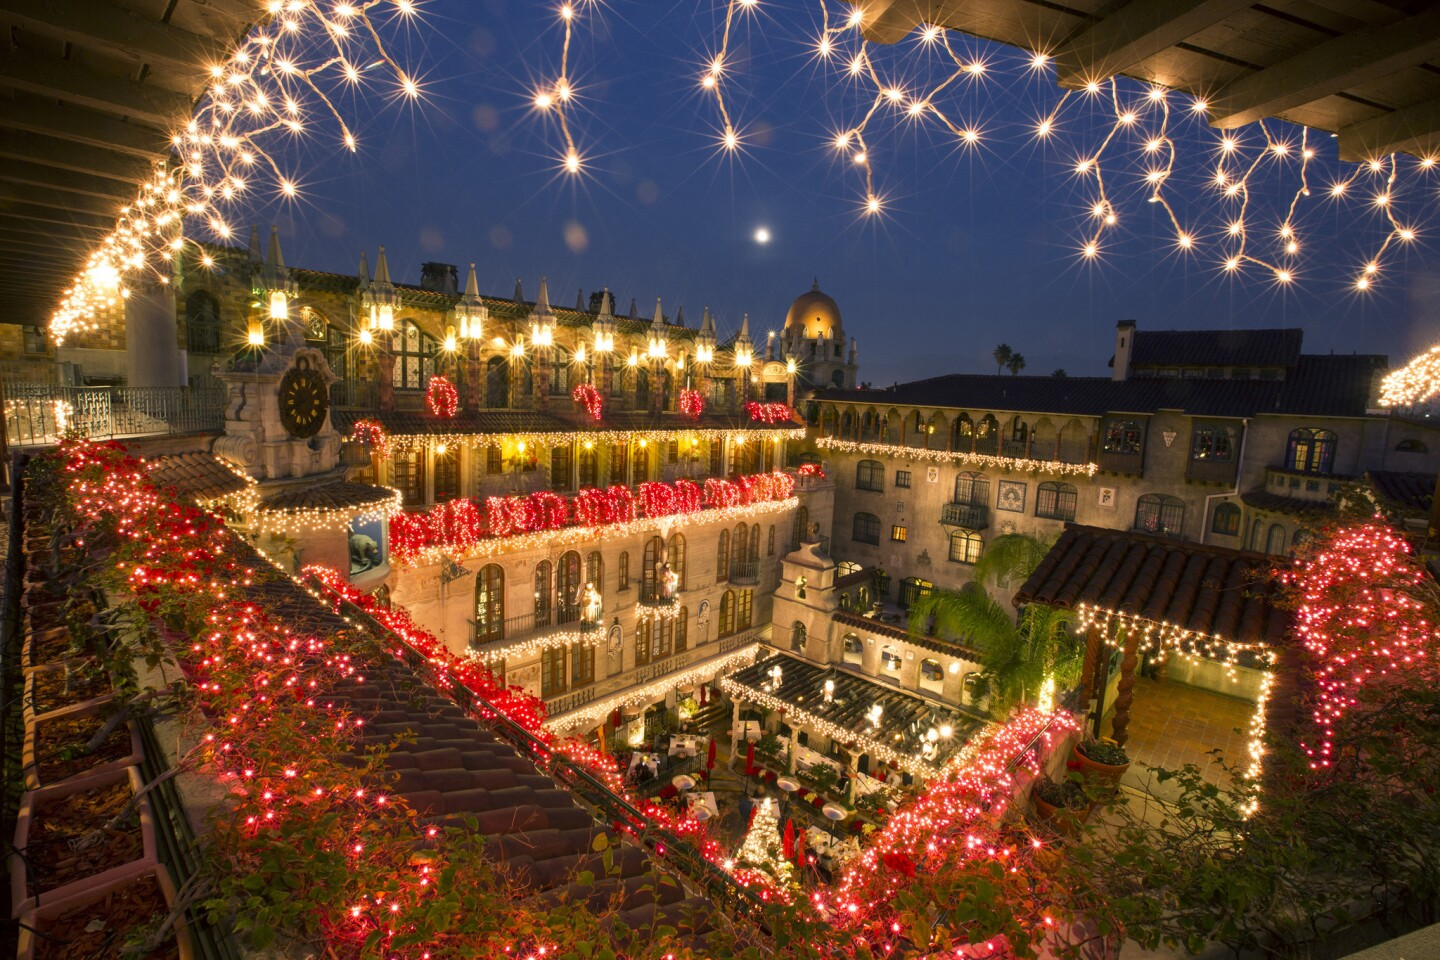 Quick getaway to Mission Inn in Riverside